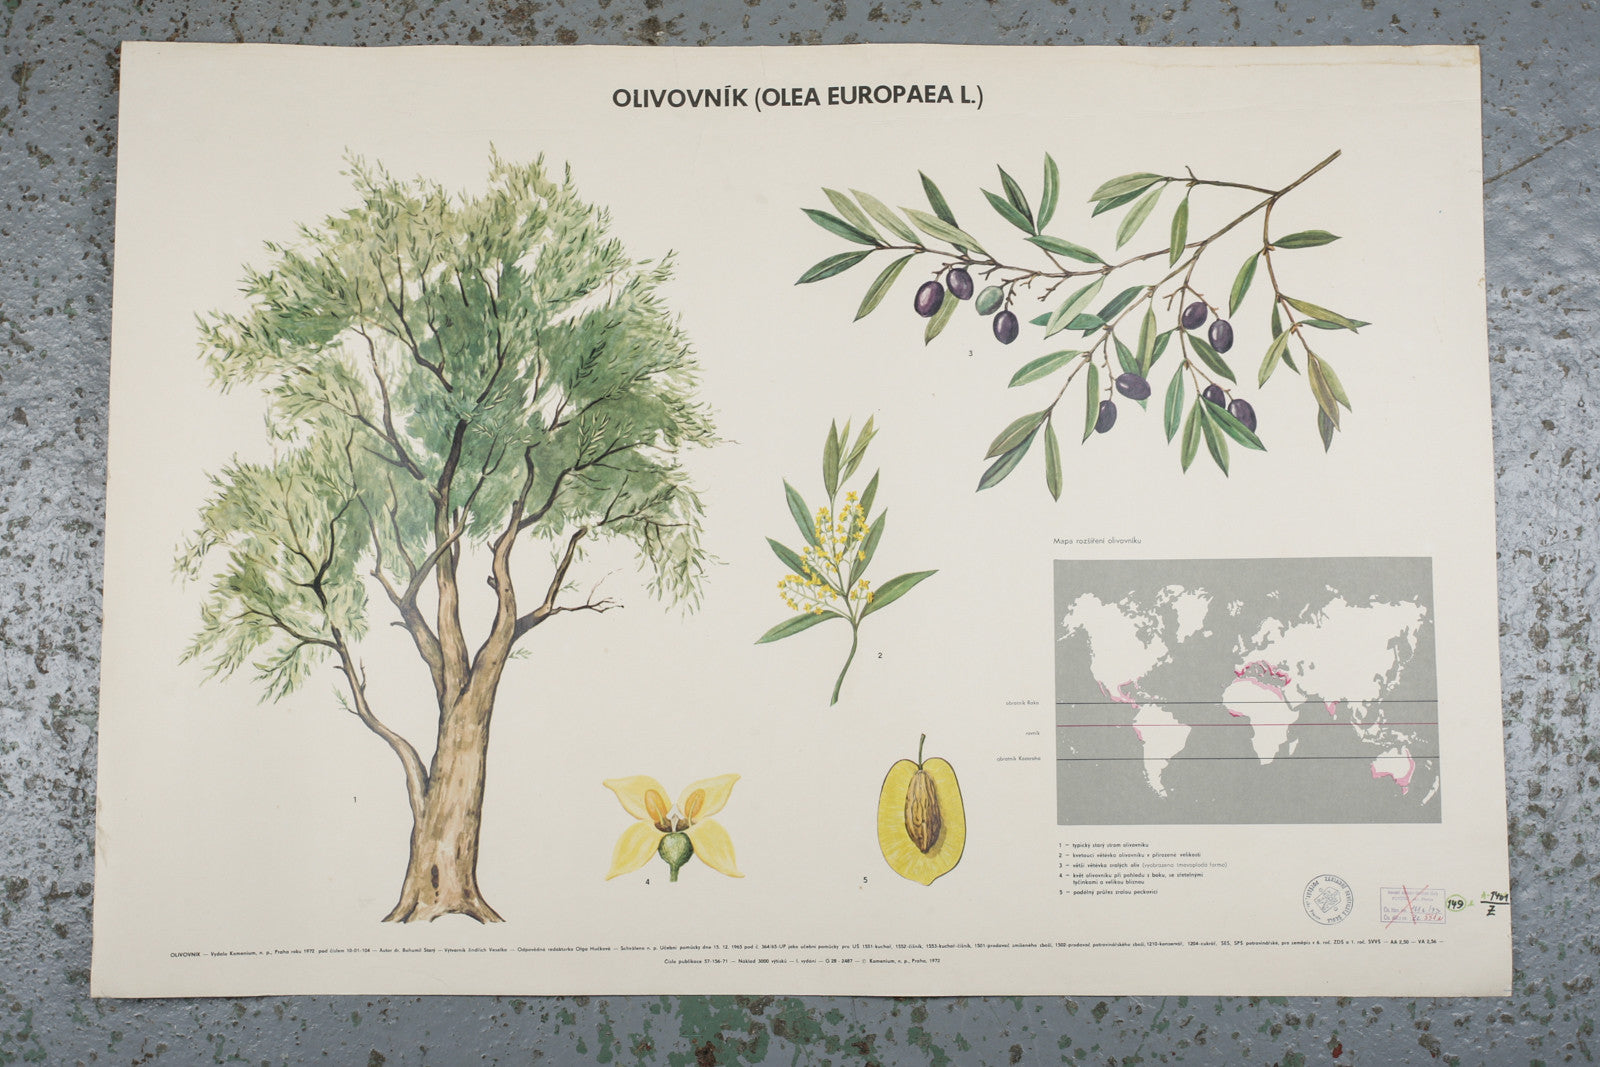 A 1972 botanical school wall chart of an olive available for sale from Industrious Interiors, an online vintage furniture and homeware store based in Nottingham, England.